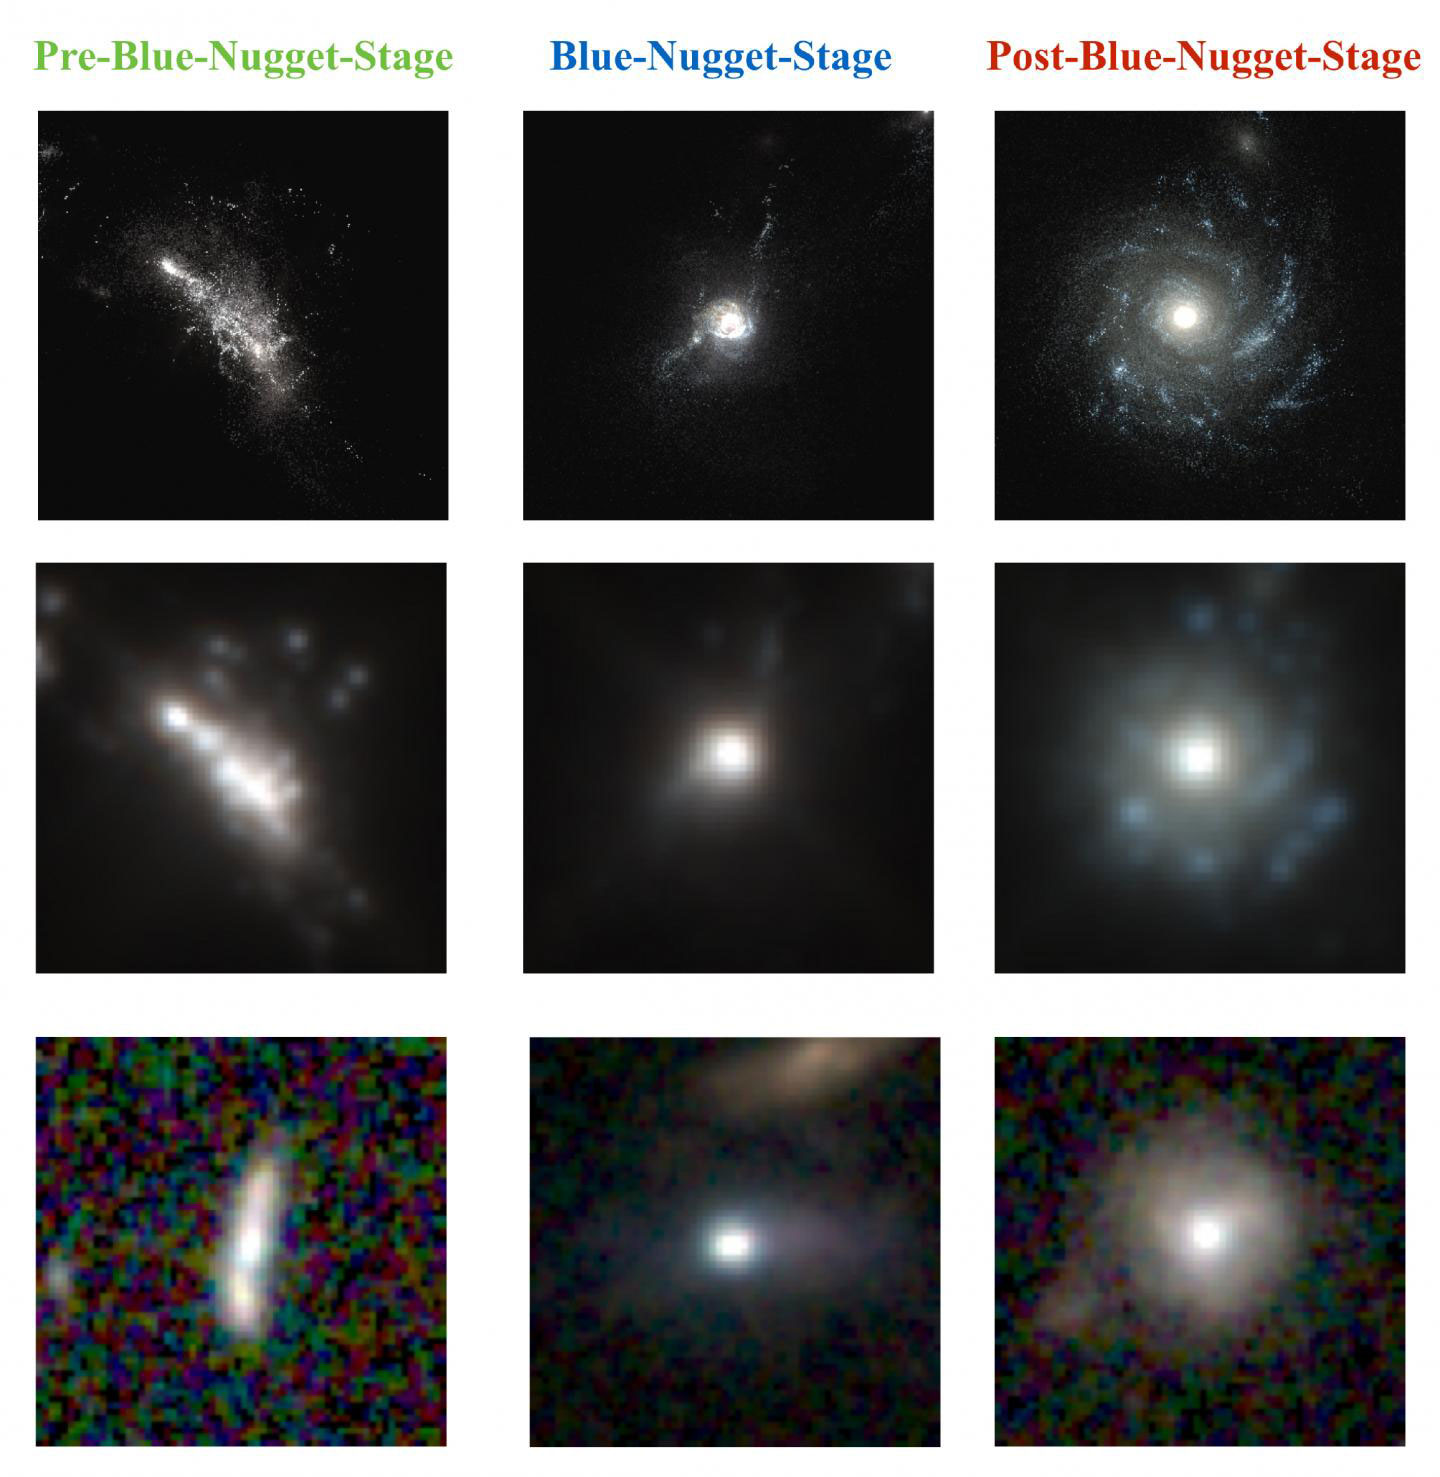 Deep Learning Algorithm Brings New Tools To Astronomy